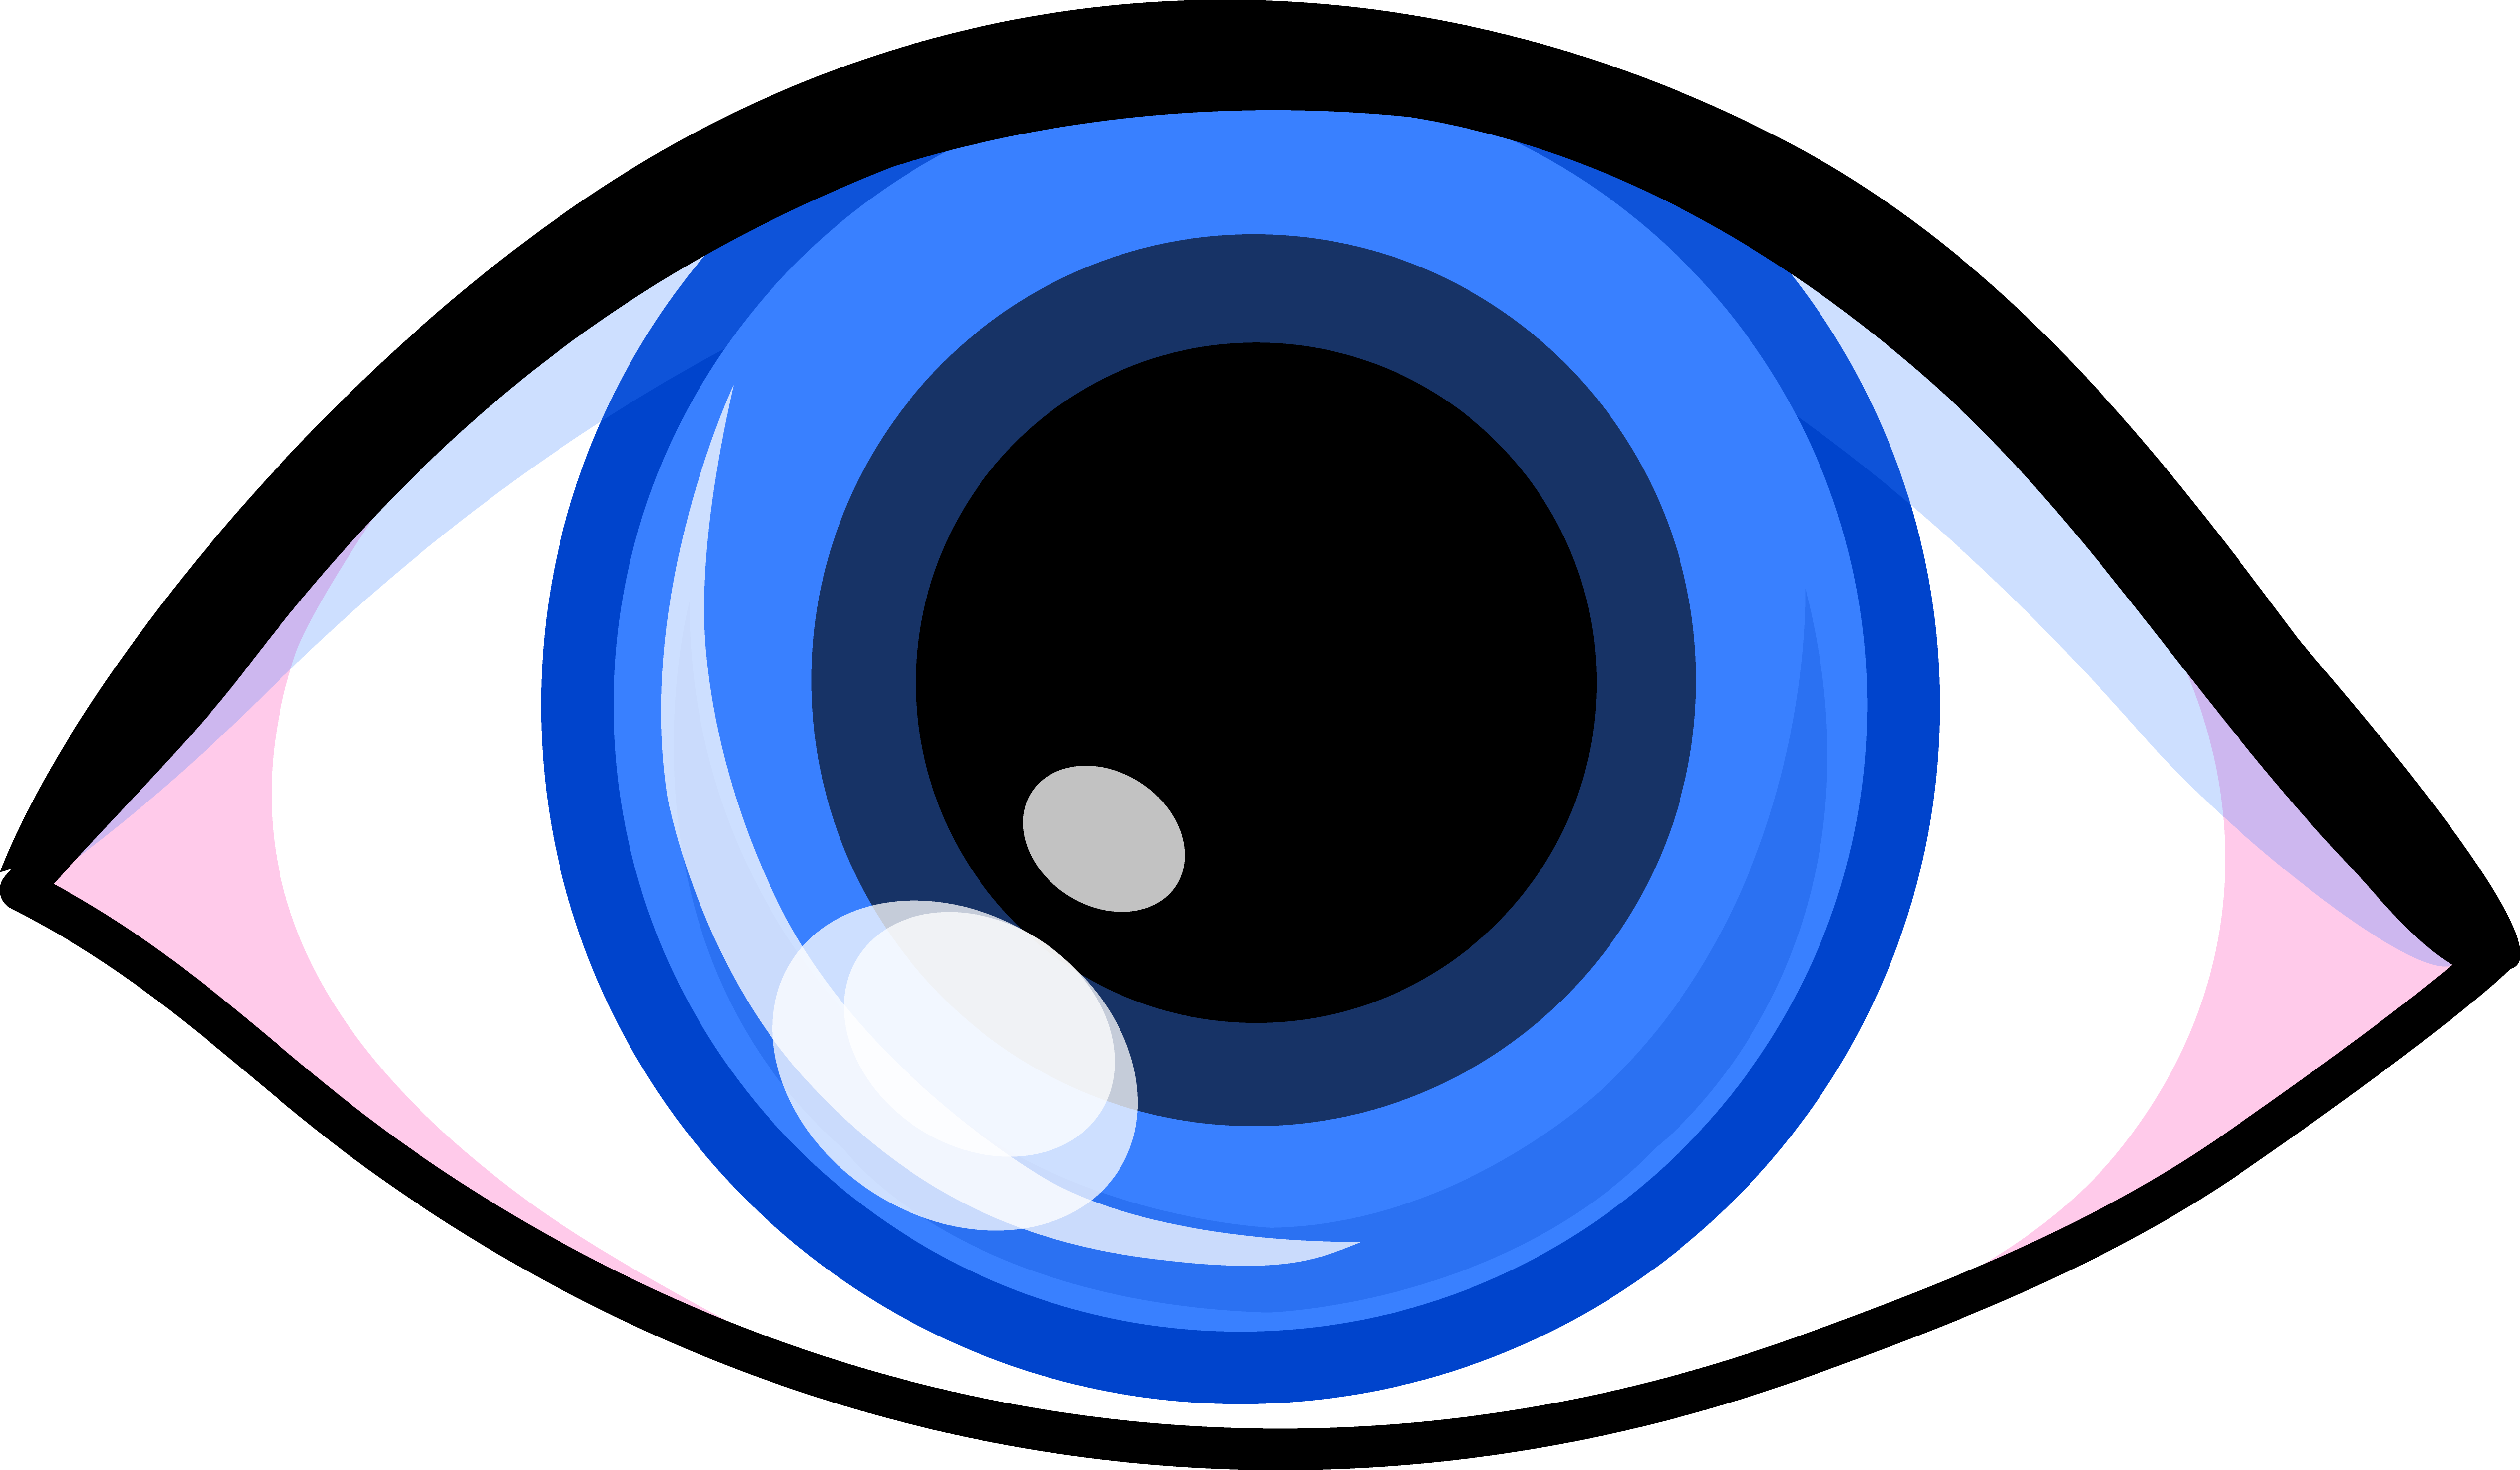 1 blue eye clipart - ClipartFest png royalty free download